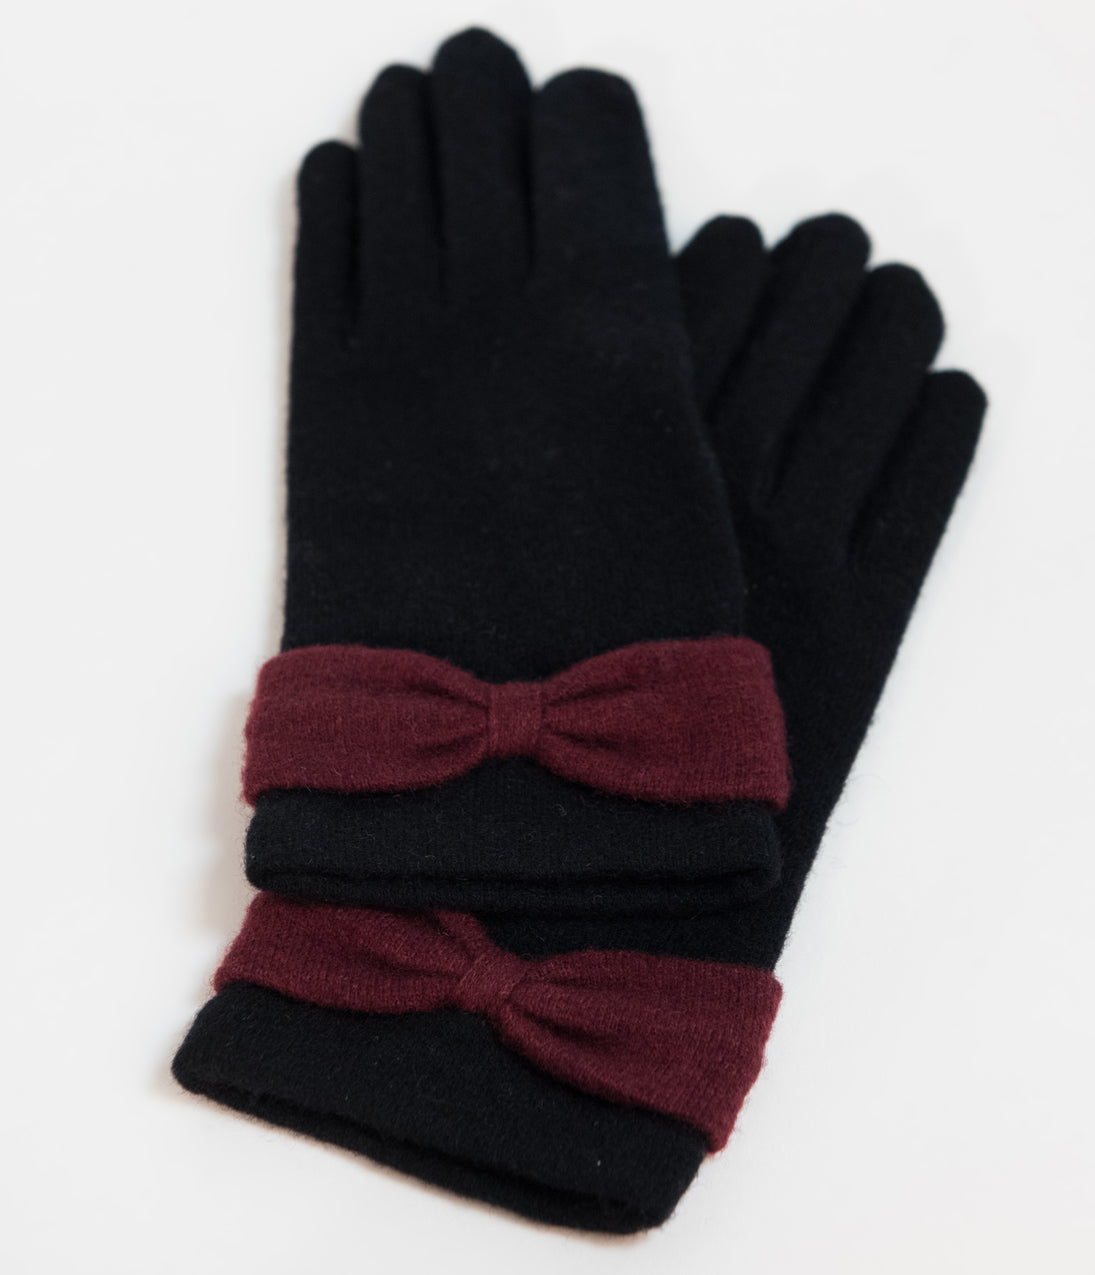 Vintage Style Gloves- Long, Wrist, Evening, Day, Leather, Lace Unique Vintage Black Wool  Burgundy Red Bow Wrist Gloves $20.00 AT vintagedancer.com